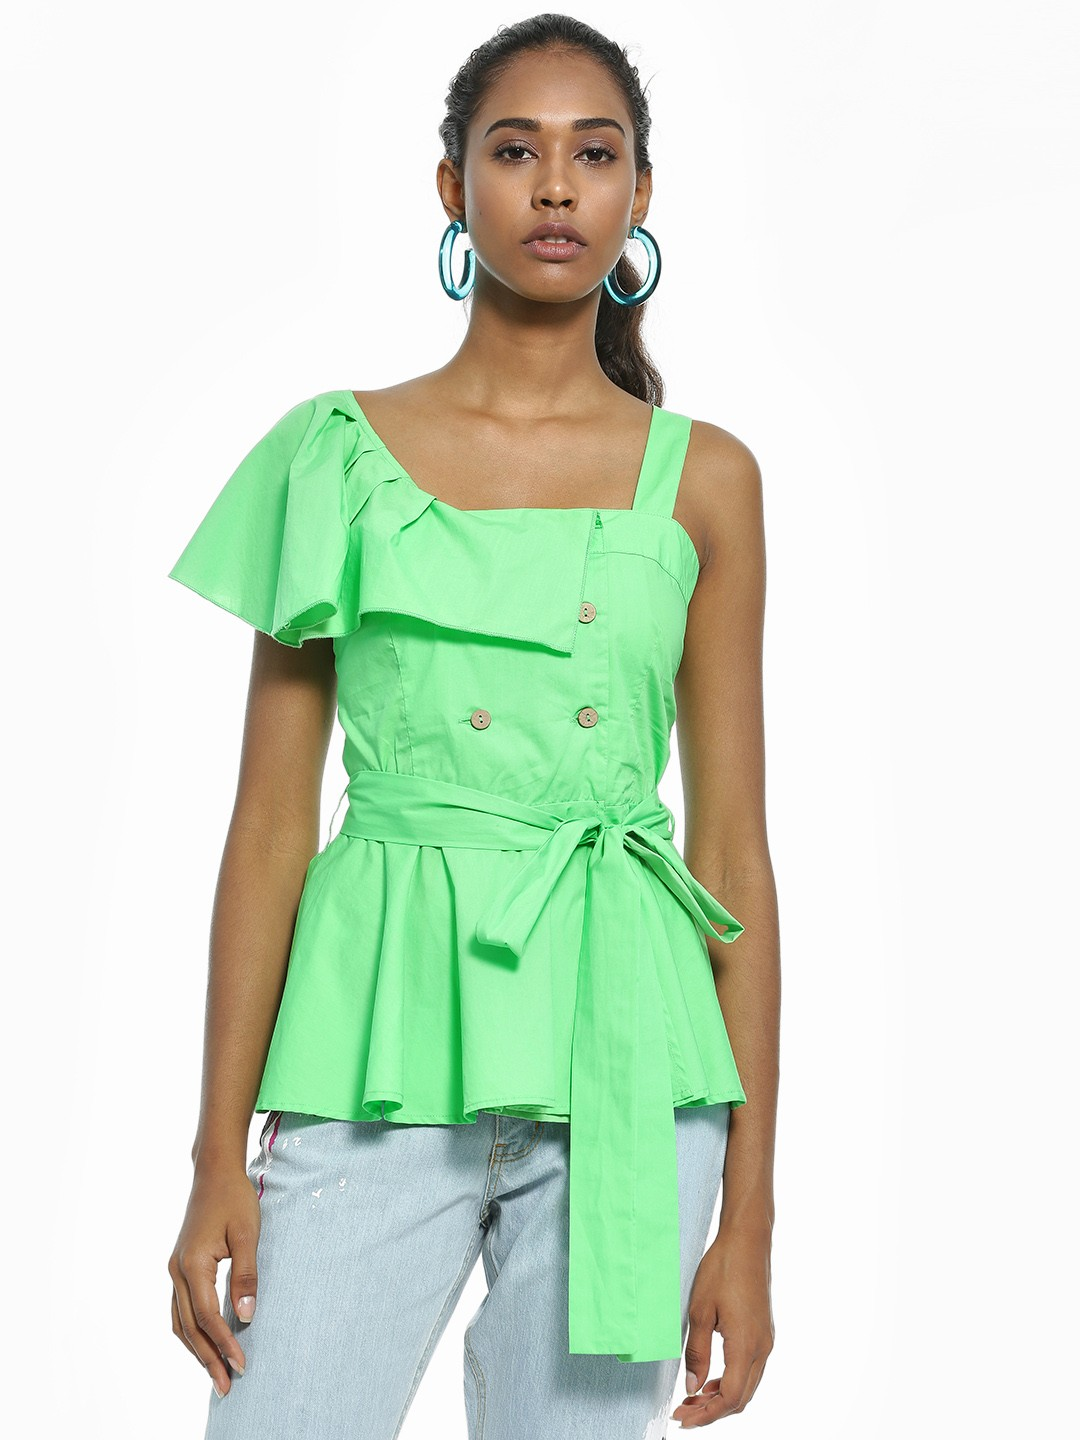 Ri-Dress Green One Shoulder Tie Knot Blouse 1